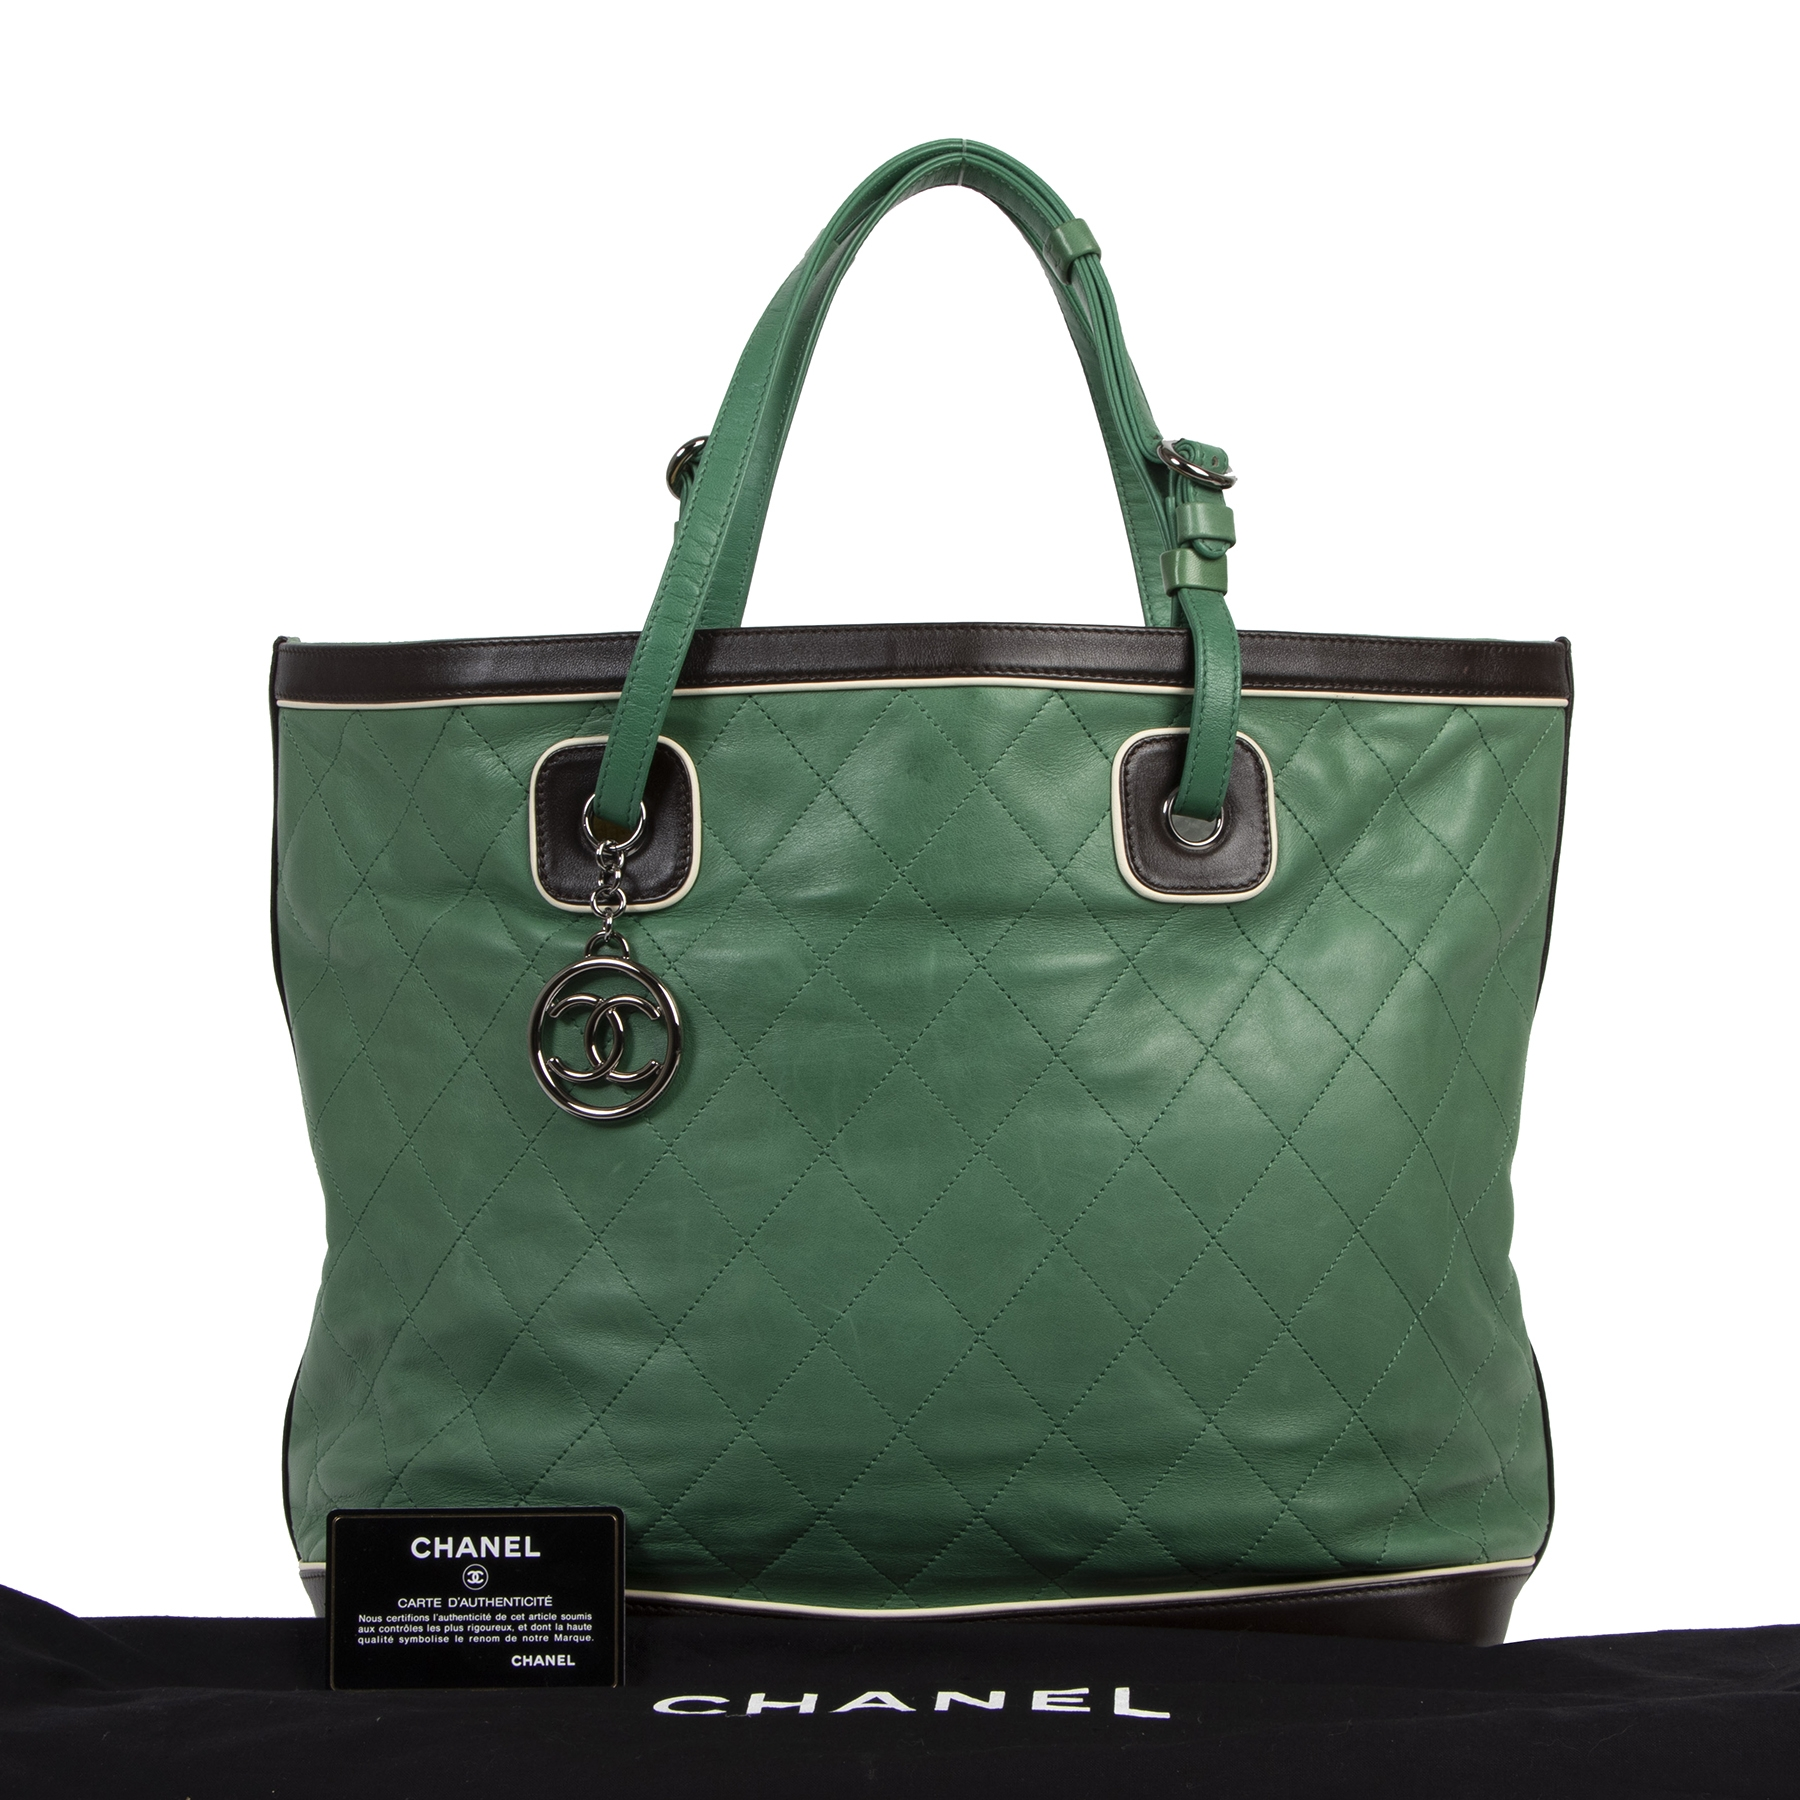 Authentieke tweedehands vintage Chanel Green Country Club Tote koop online webshop LabelLOV